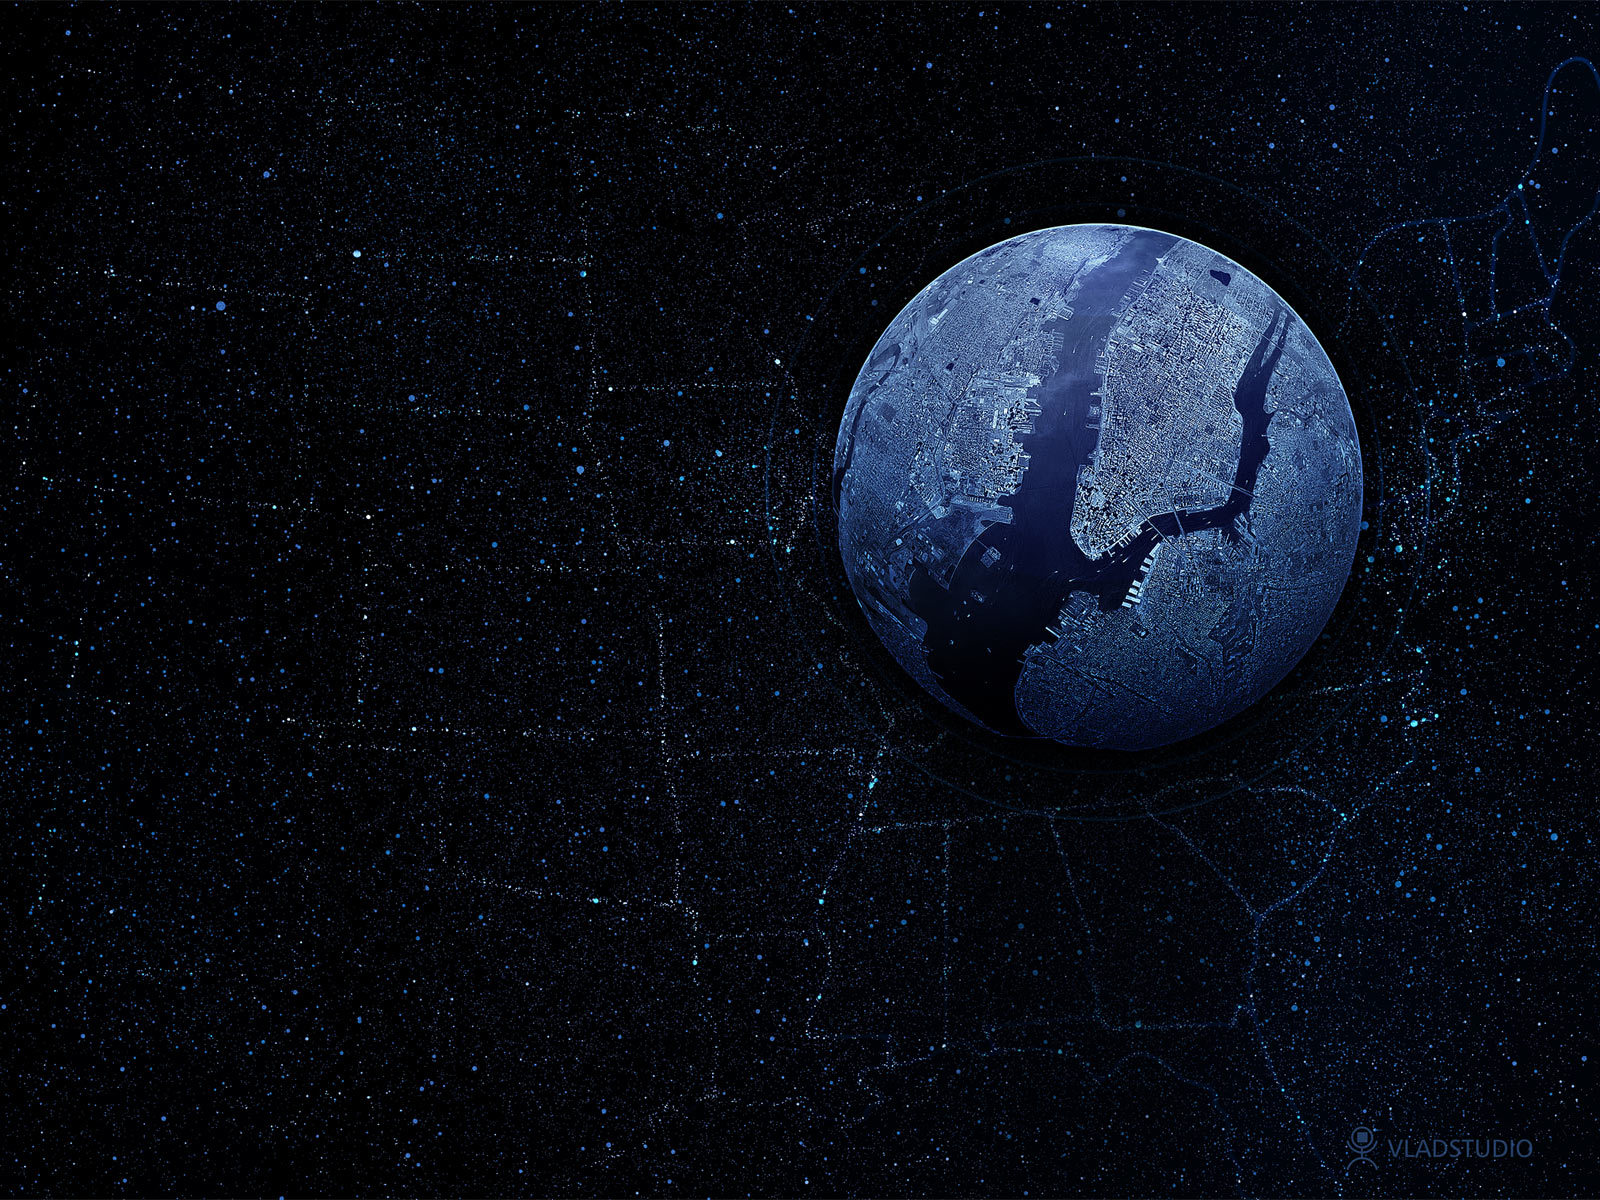 Wallpaper Black wallpaper with the planet New York